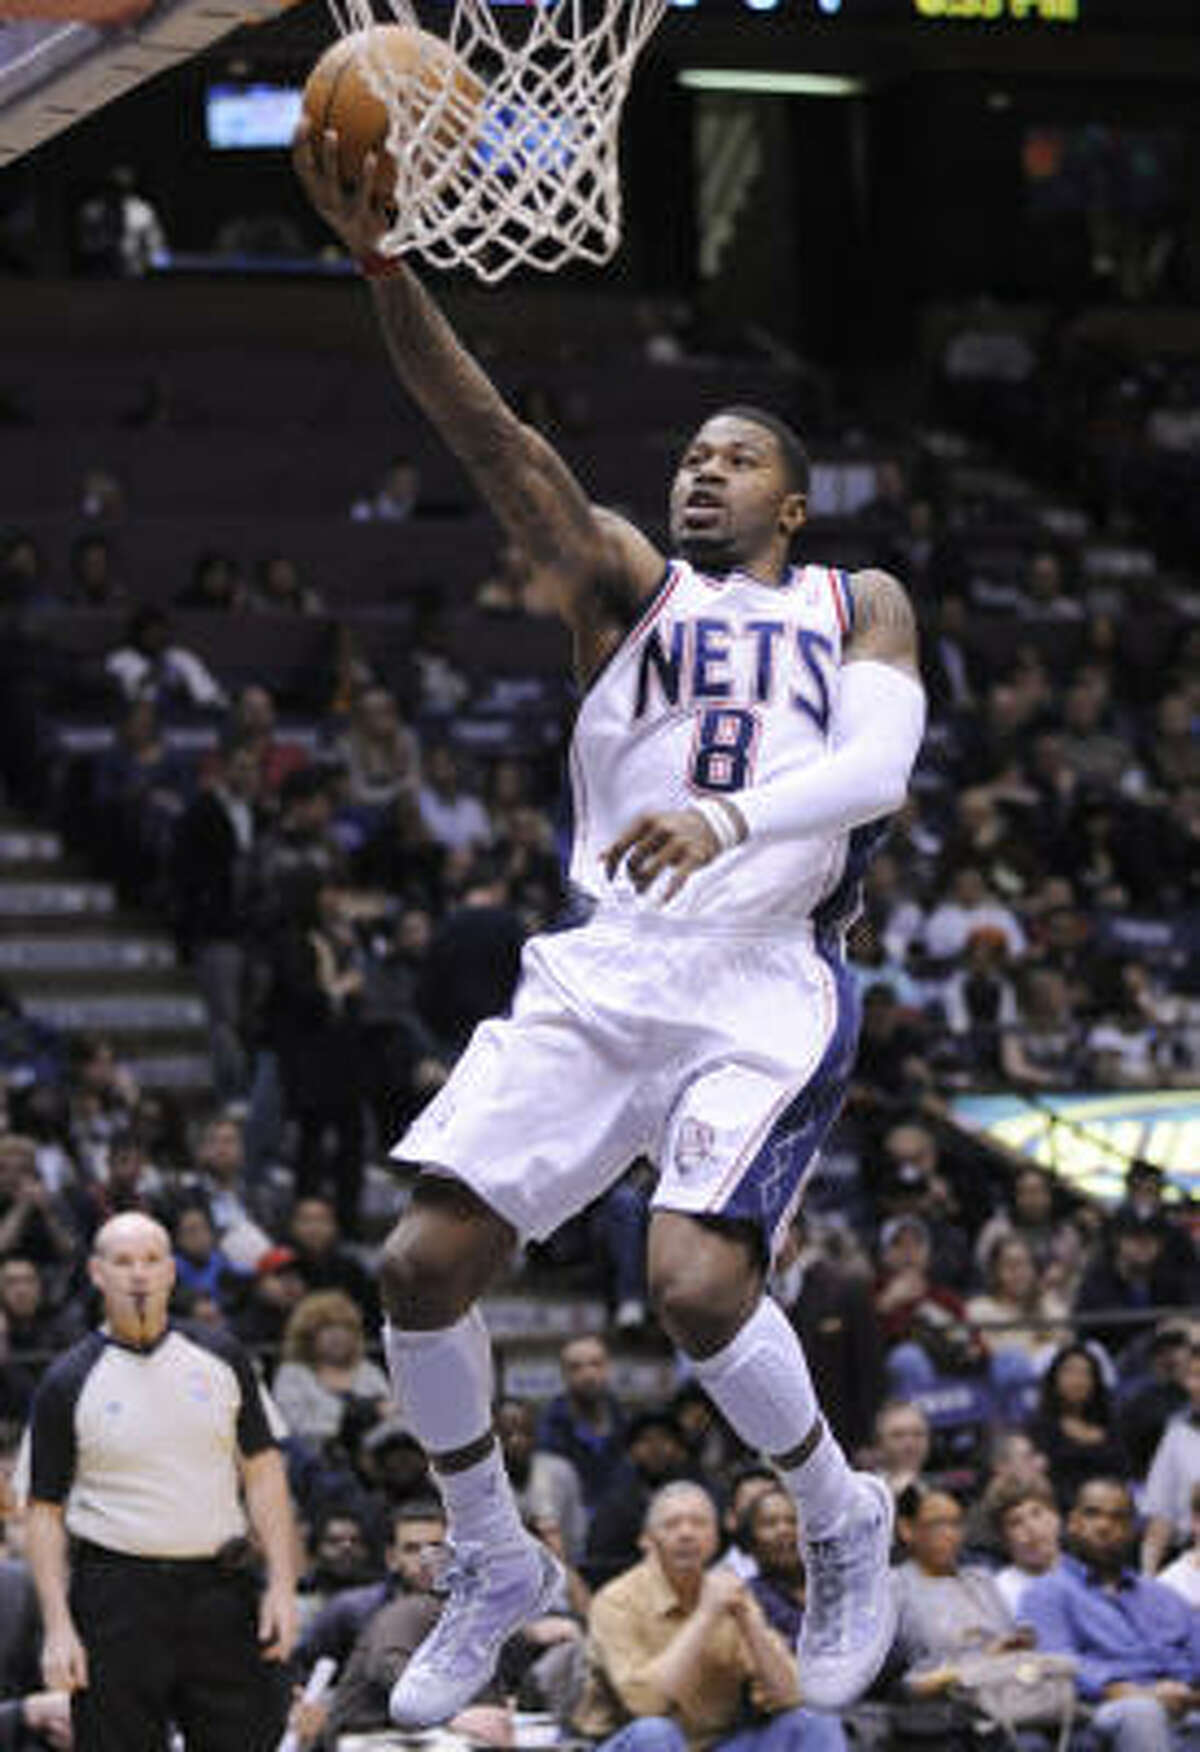 Terrence Williams has struggled this season, averaging just 6.7 points on 39.7 percent shooting in 10 games with the Nets.